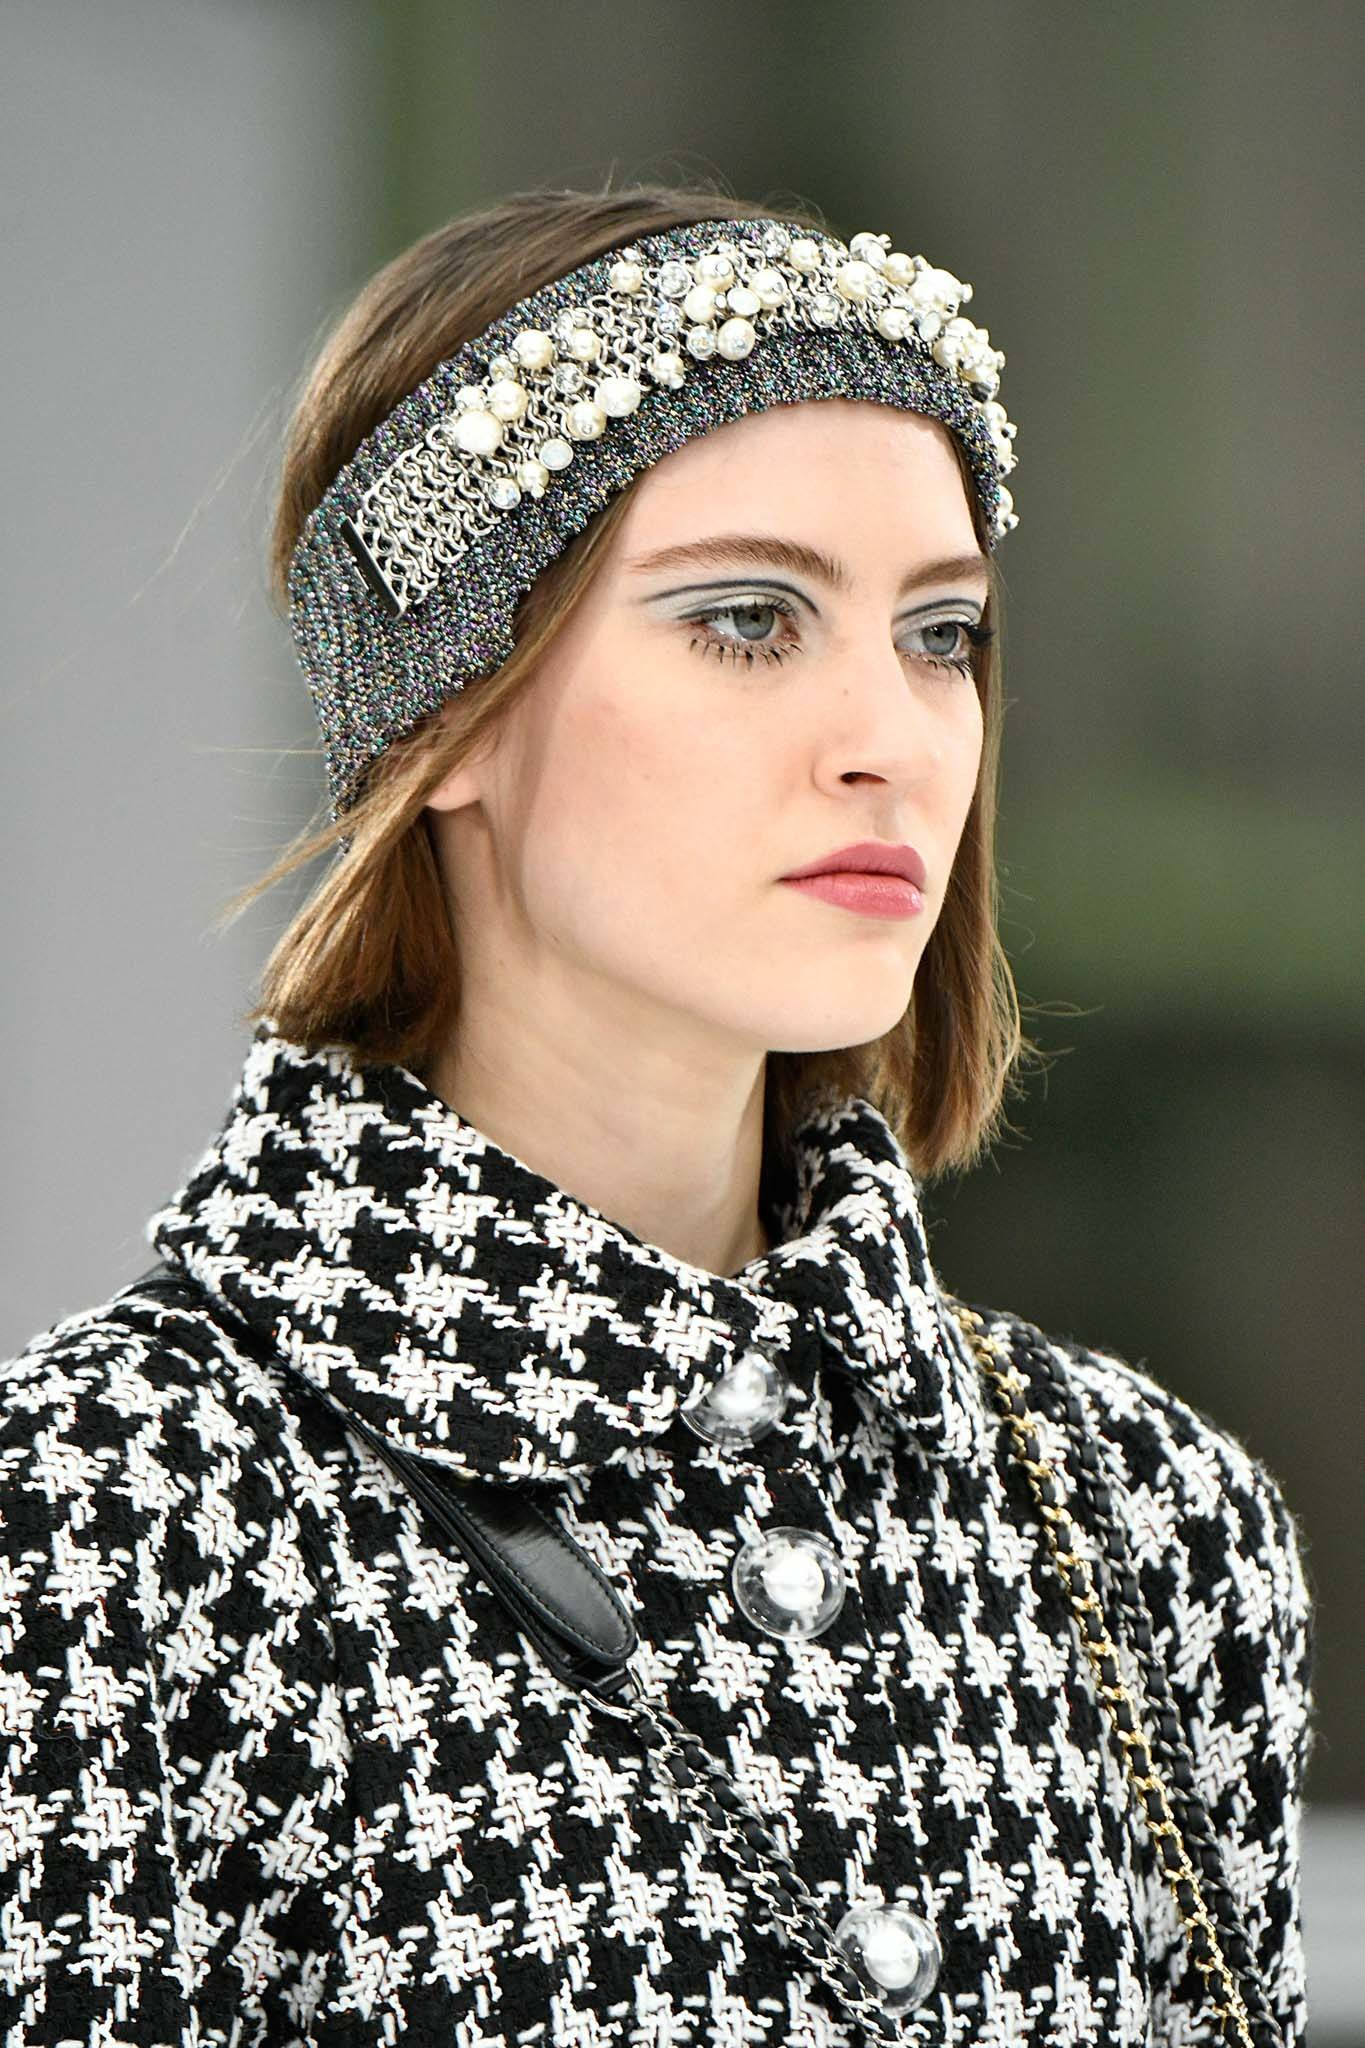 Chanel 2017 - model with grey headband encrusted with pearls